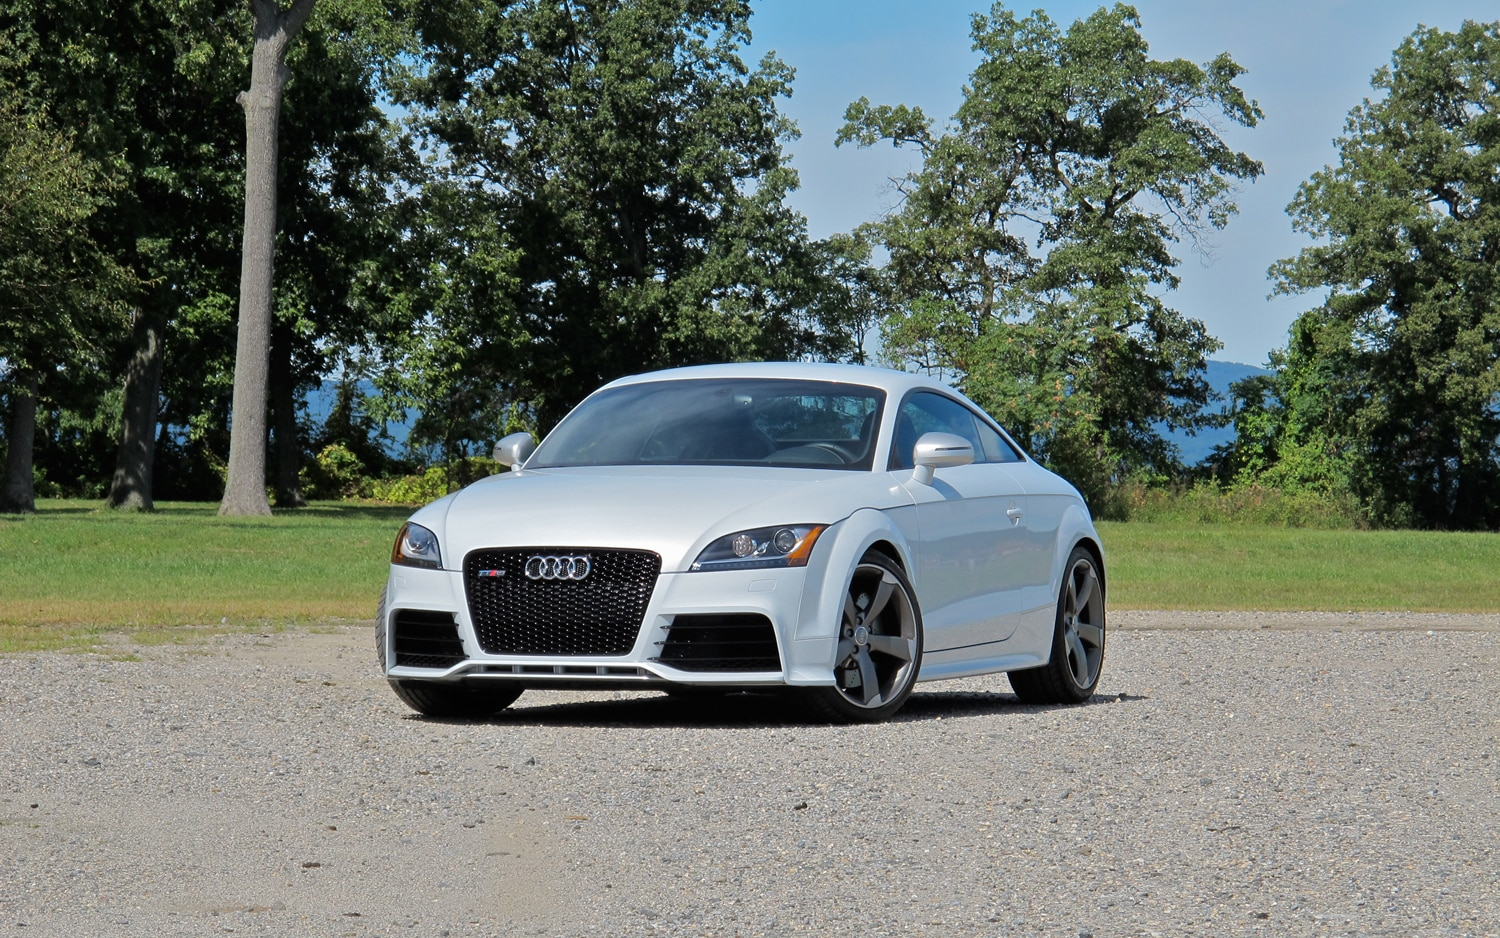 2012 Audi TT RS Front Left View 21